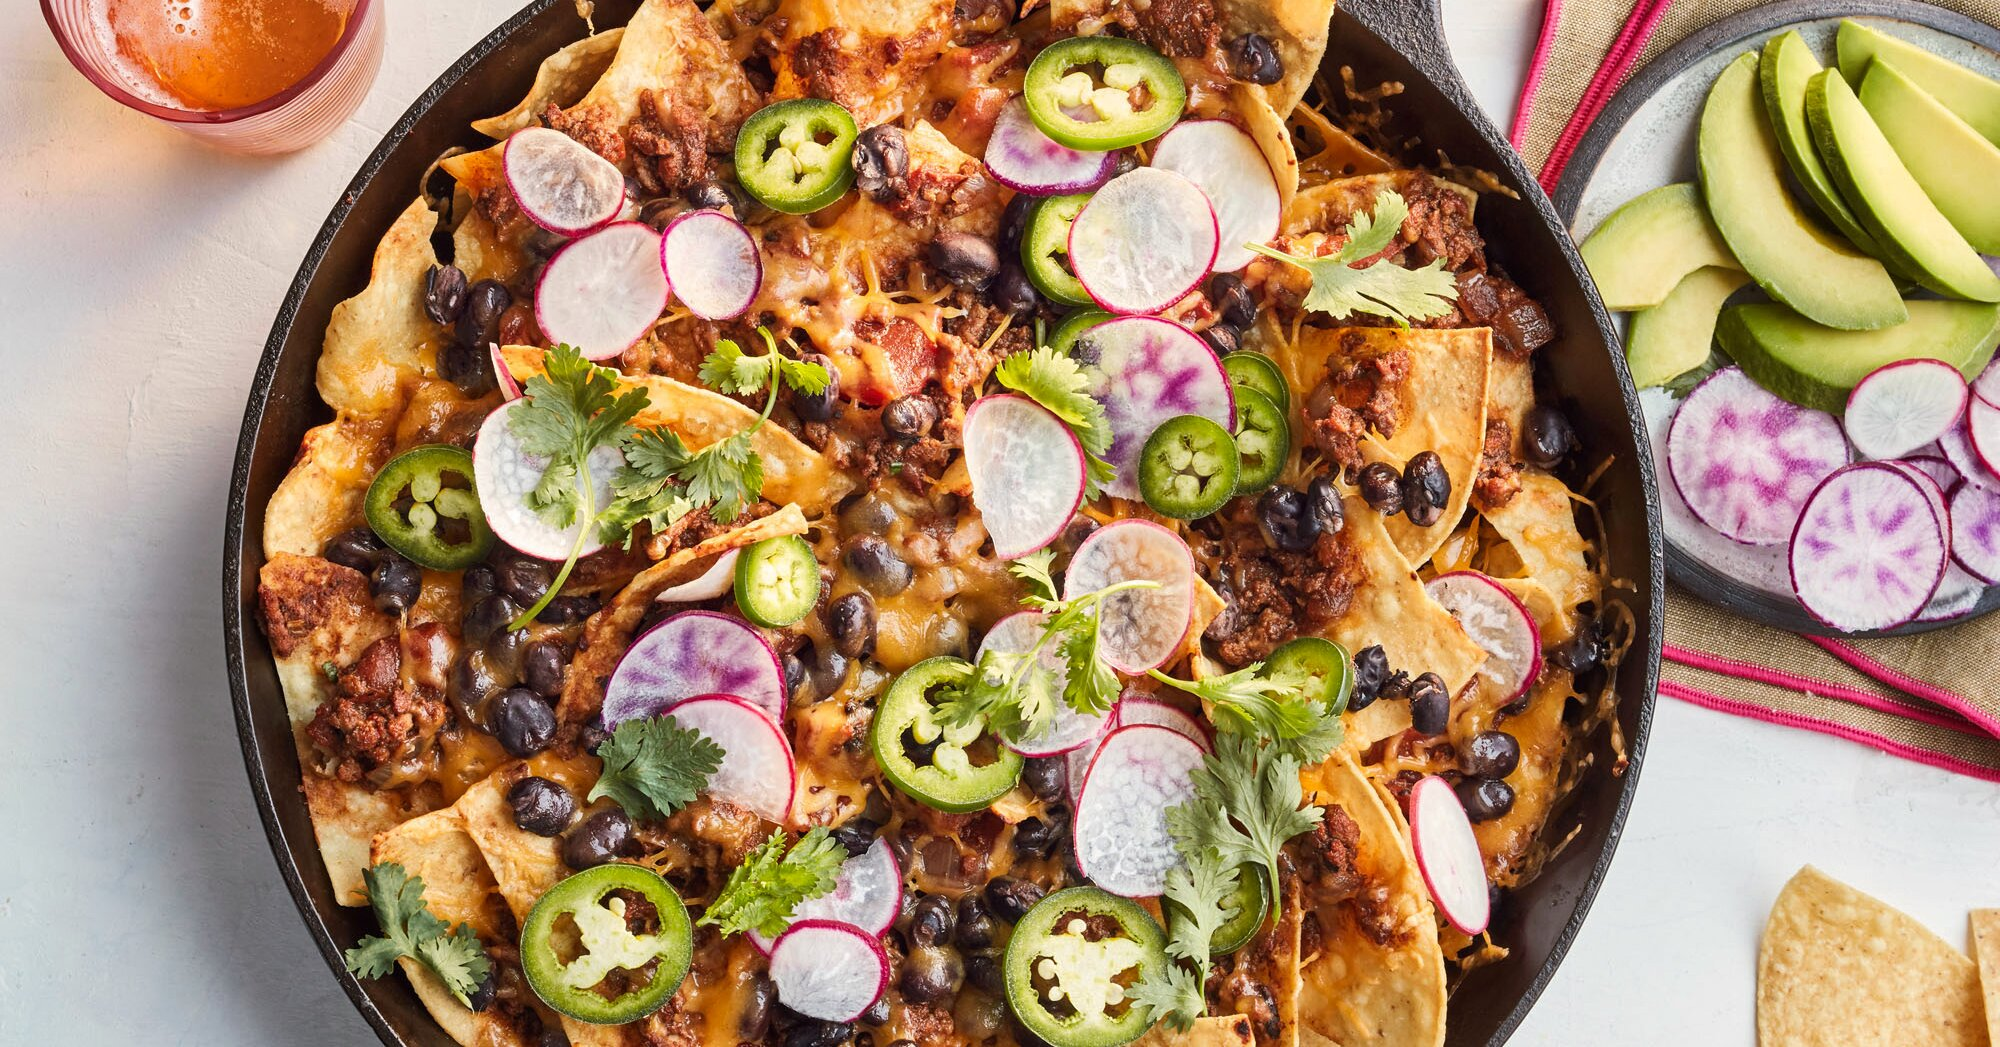 20 Ground Beef Recipes to Mix Up Your Dinner Routine